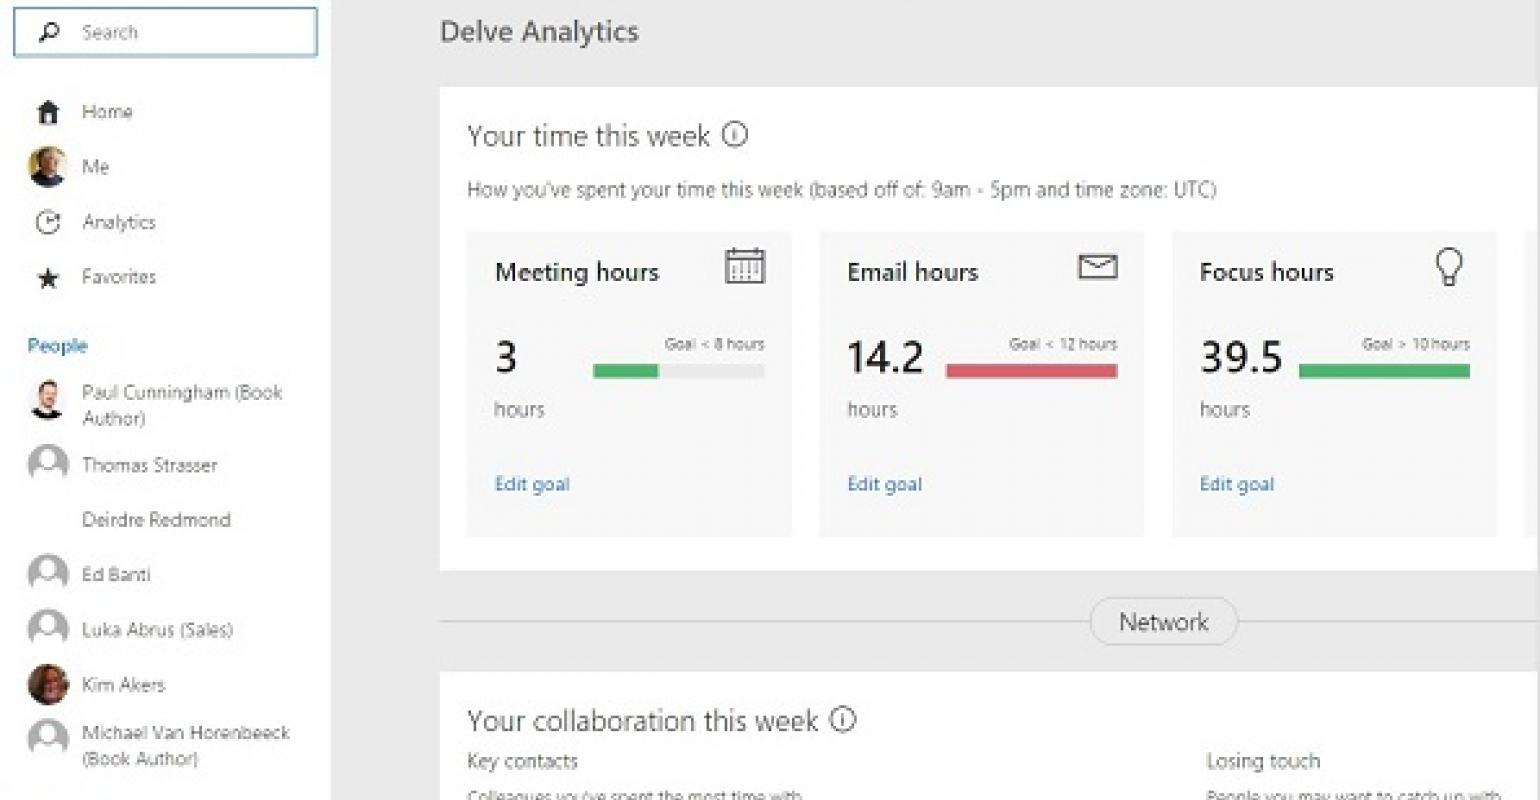 Delve Analytics lets Office 365 users track (and maybe